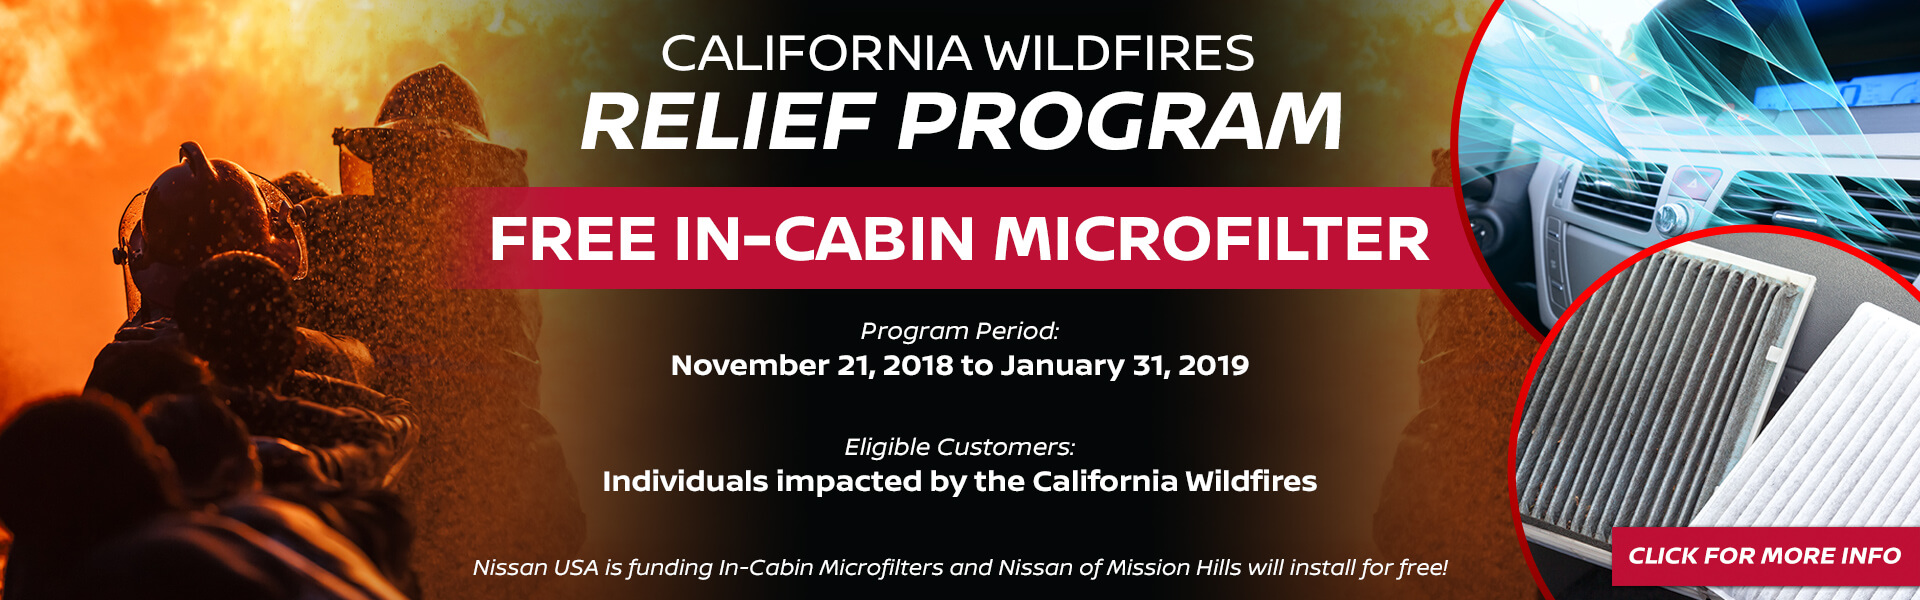 CA Wildfires Program